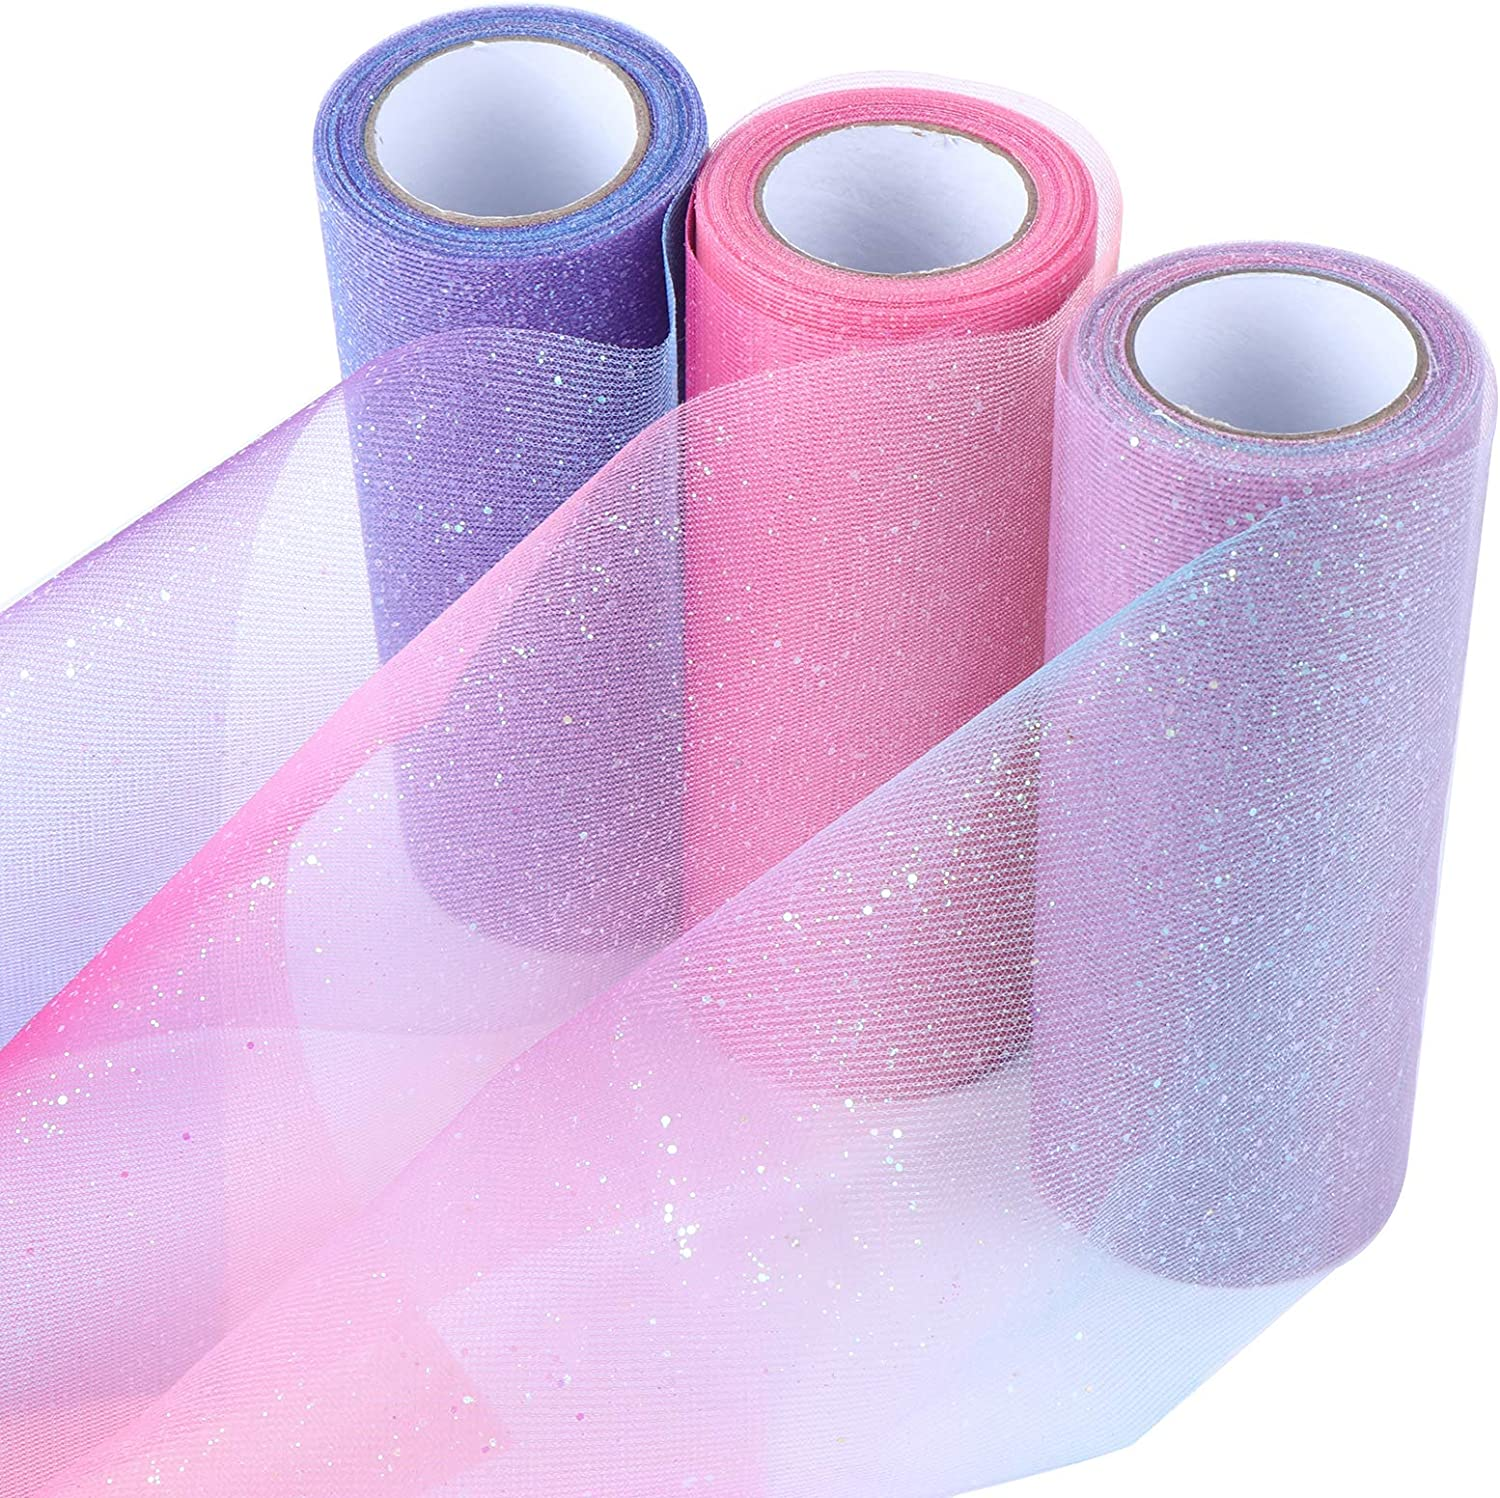 3 New Orleans Mall Rolls Shimmer Some reservation Rainbow Dreamy Glitter Tulle Ribbon